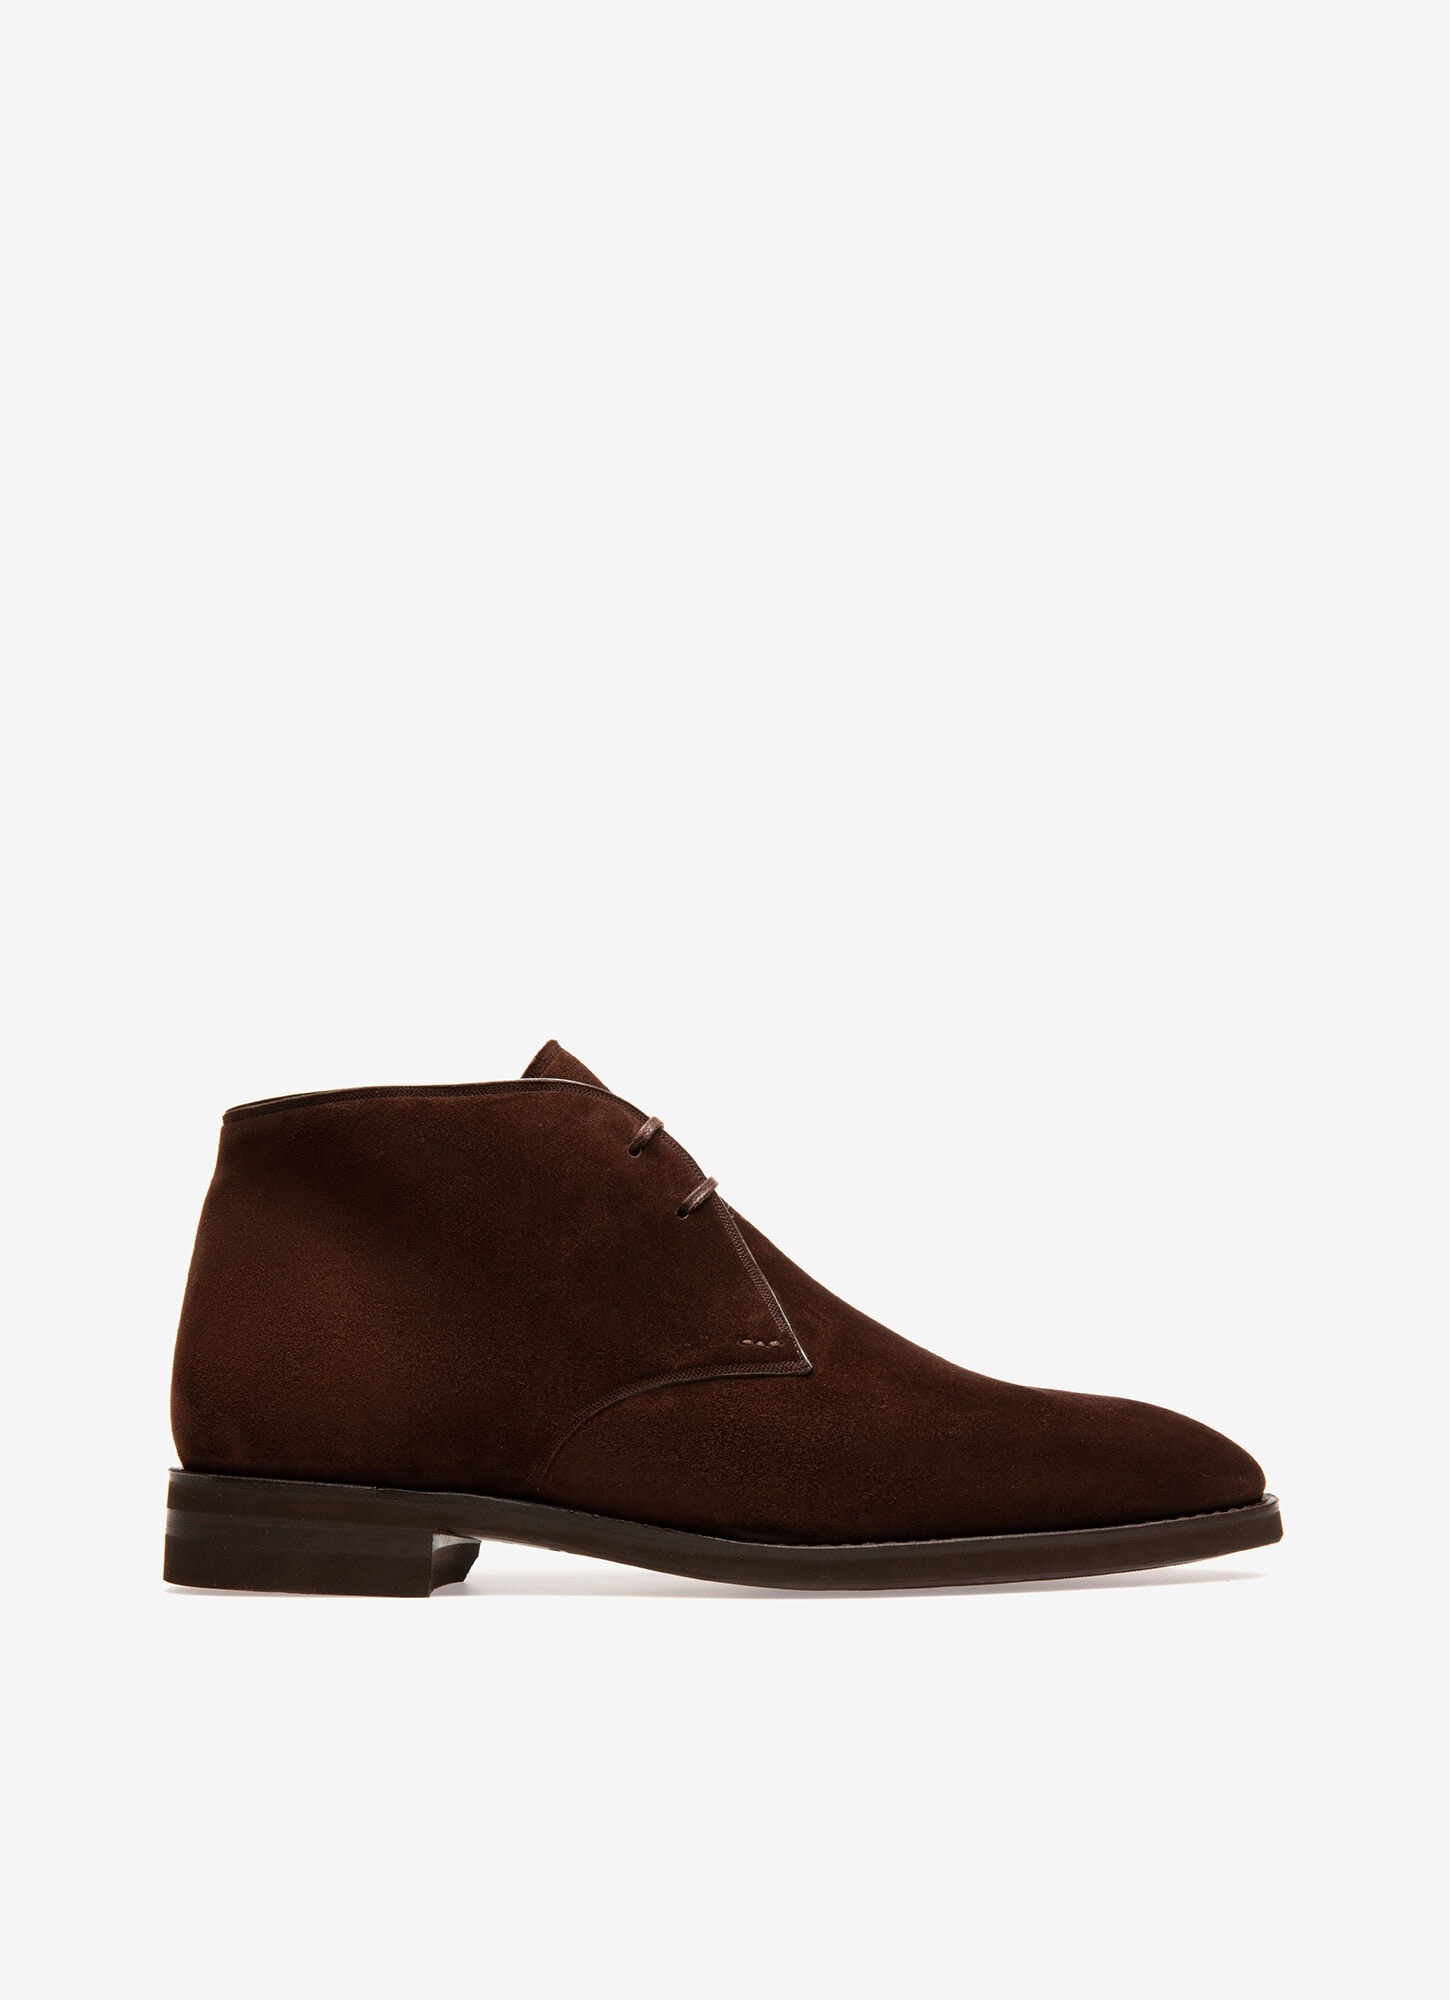 Mens Desert Boots | Brown Suede Leather